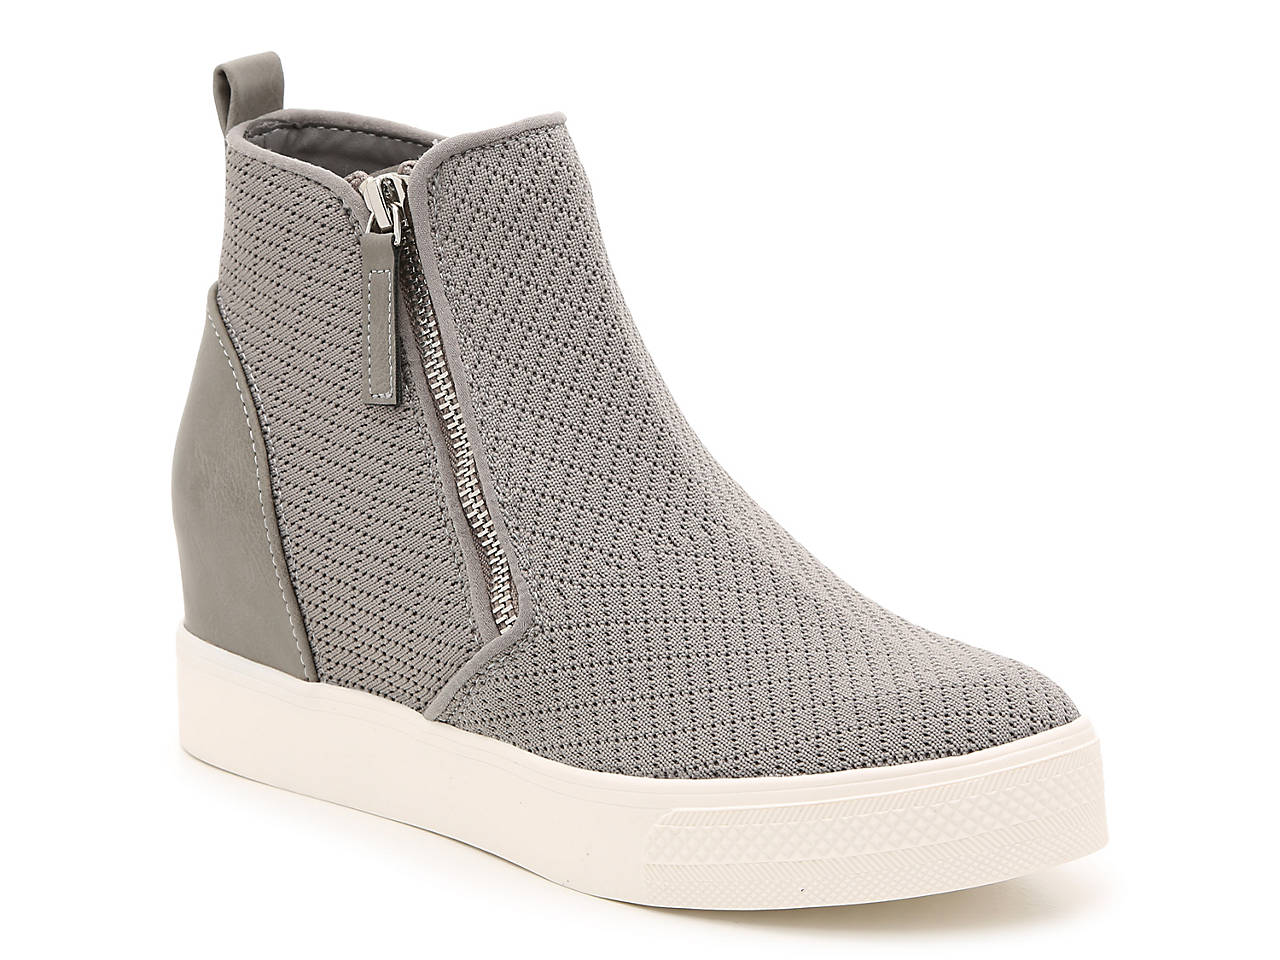 04ae50e35dc7 Steve Madden Loxley Wedge High-Top Sneaker Women's Shoes | DSW